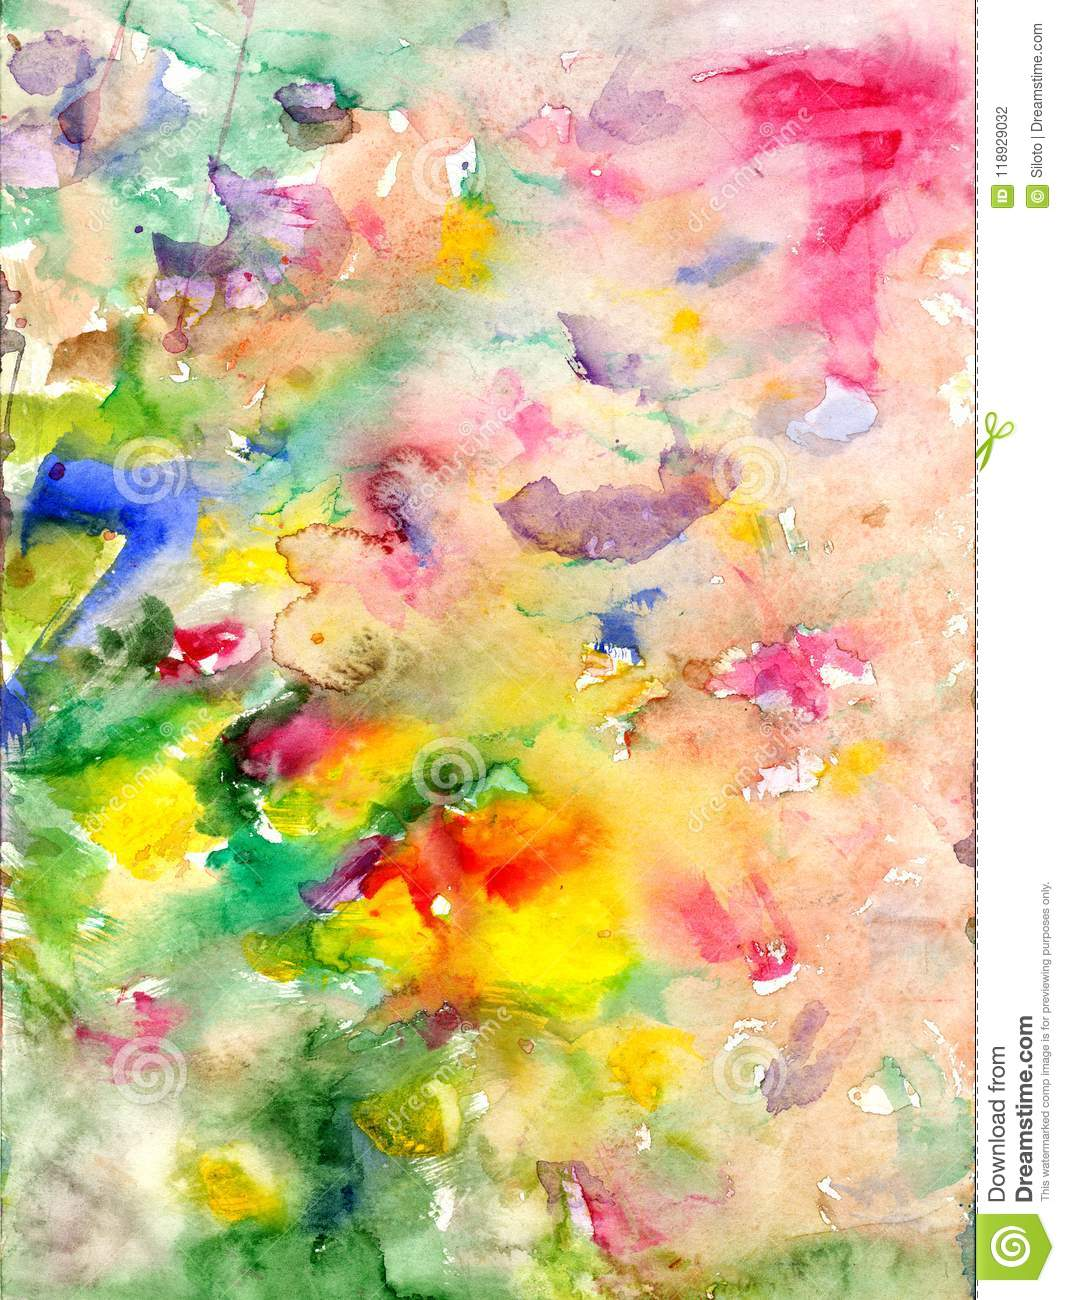 Watercolors stains and flowing paints